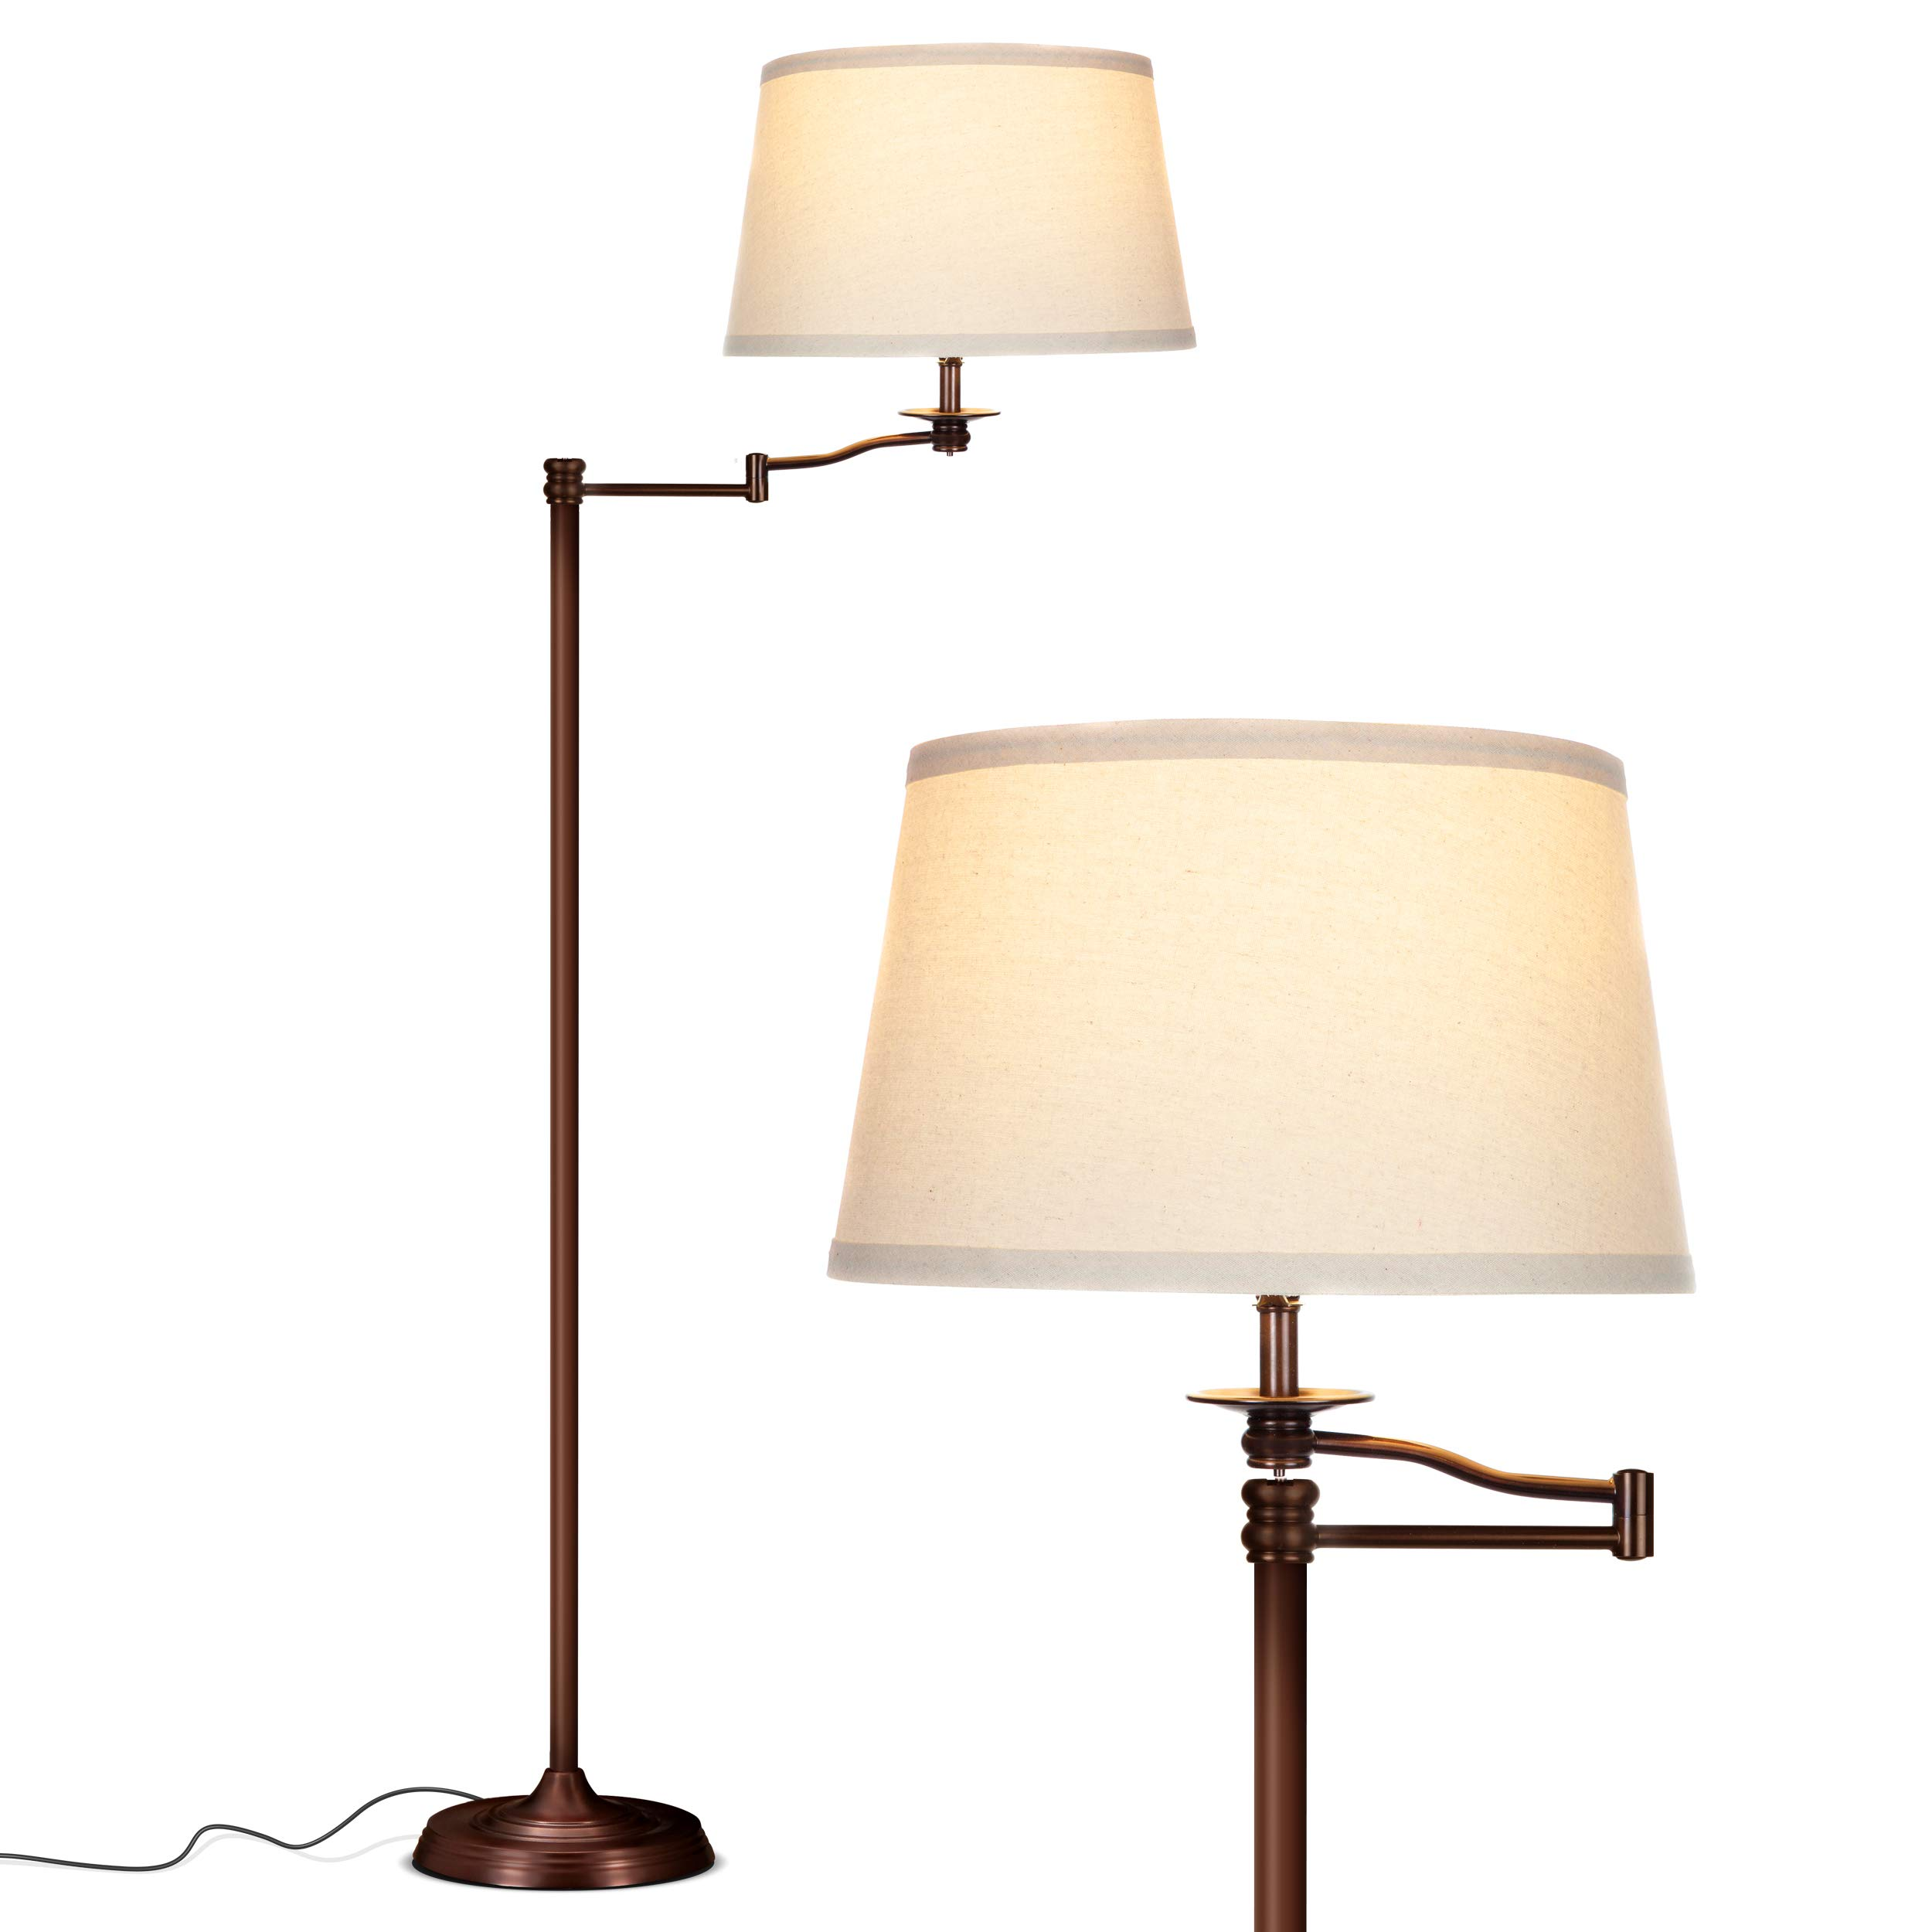 Brightech Caden Swing Arm LED Floor Lamp- Classic Lamp with Extending Arm - Diffusing Lamp Shade - Tall Industrial Uplight for Living Room, Family Room, Office or Bedroom - Bronze by Brightech